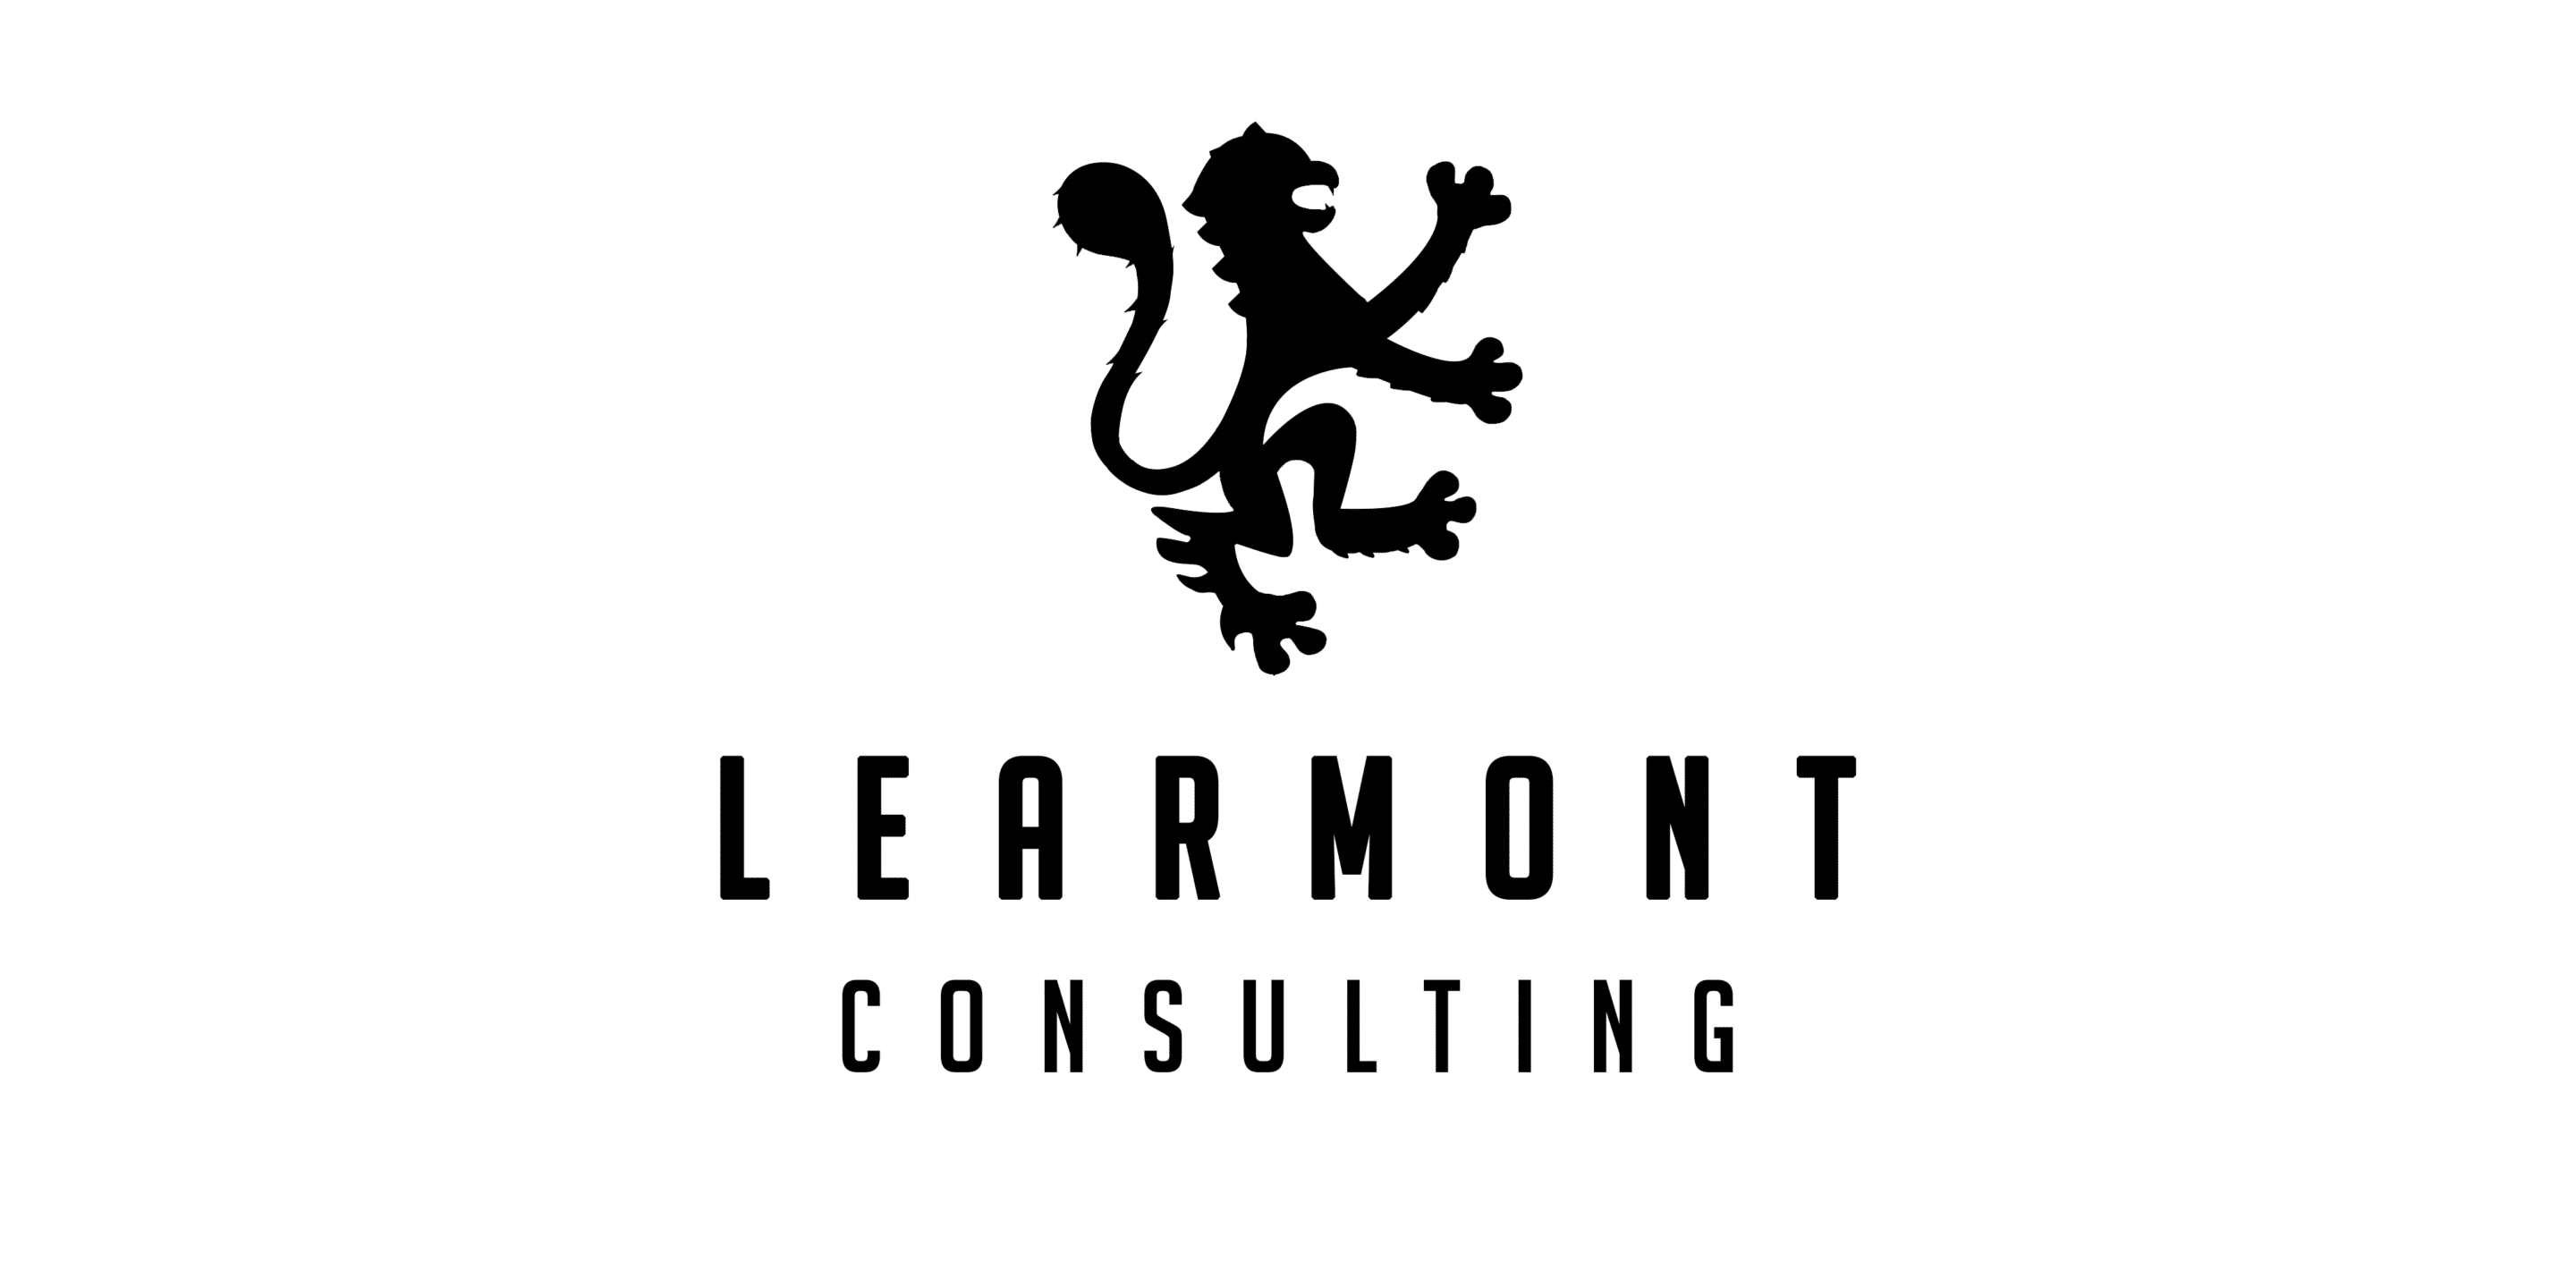 learmont consulting